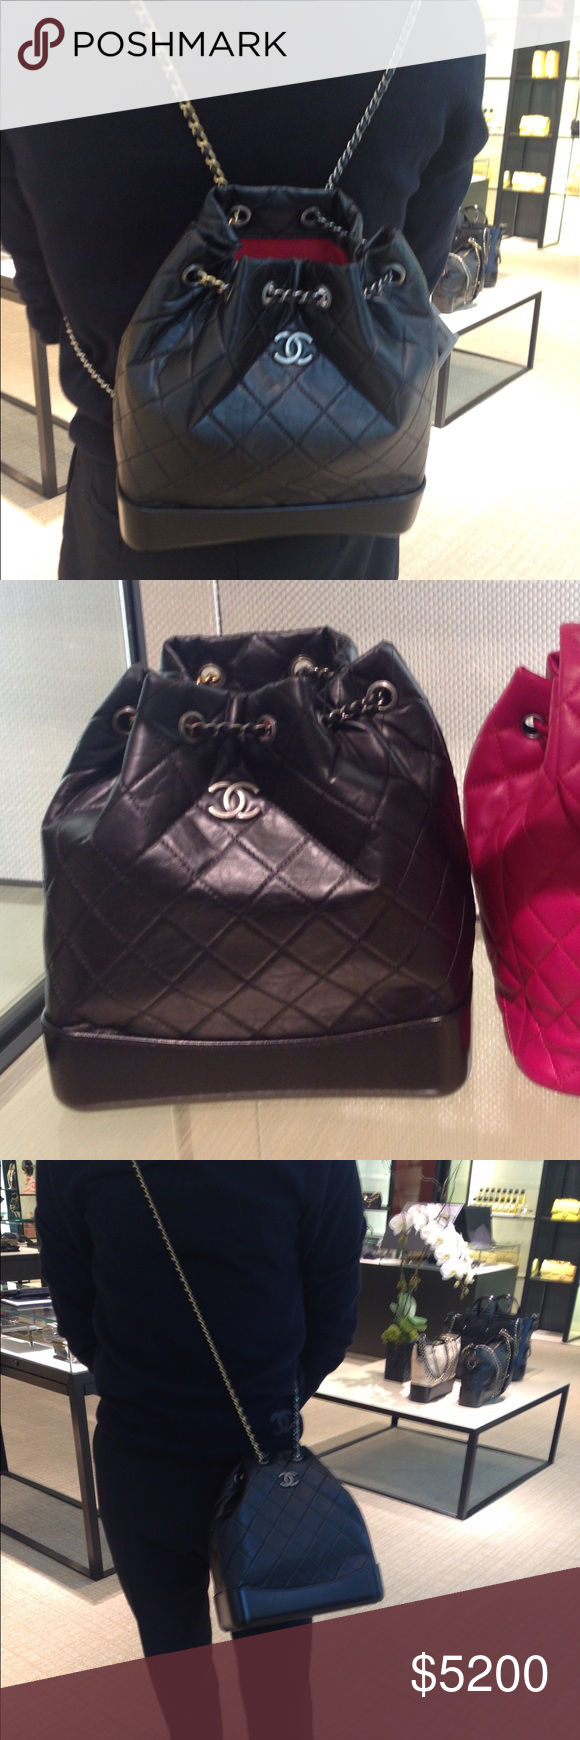 c4b4b67203a458 100% Auth Chanel Gabrielle Backpack. Large Size Brand New Size Large!! Gabrielle  Backpack. Just arrived for Pre-Fall. Black , with multi colored hardwares.